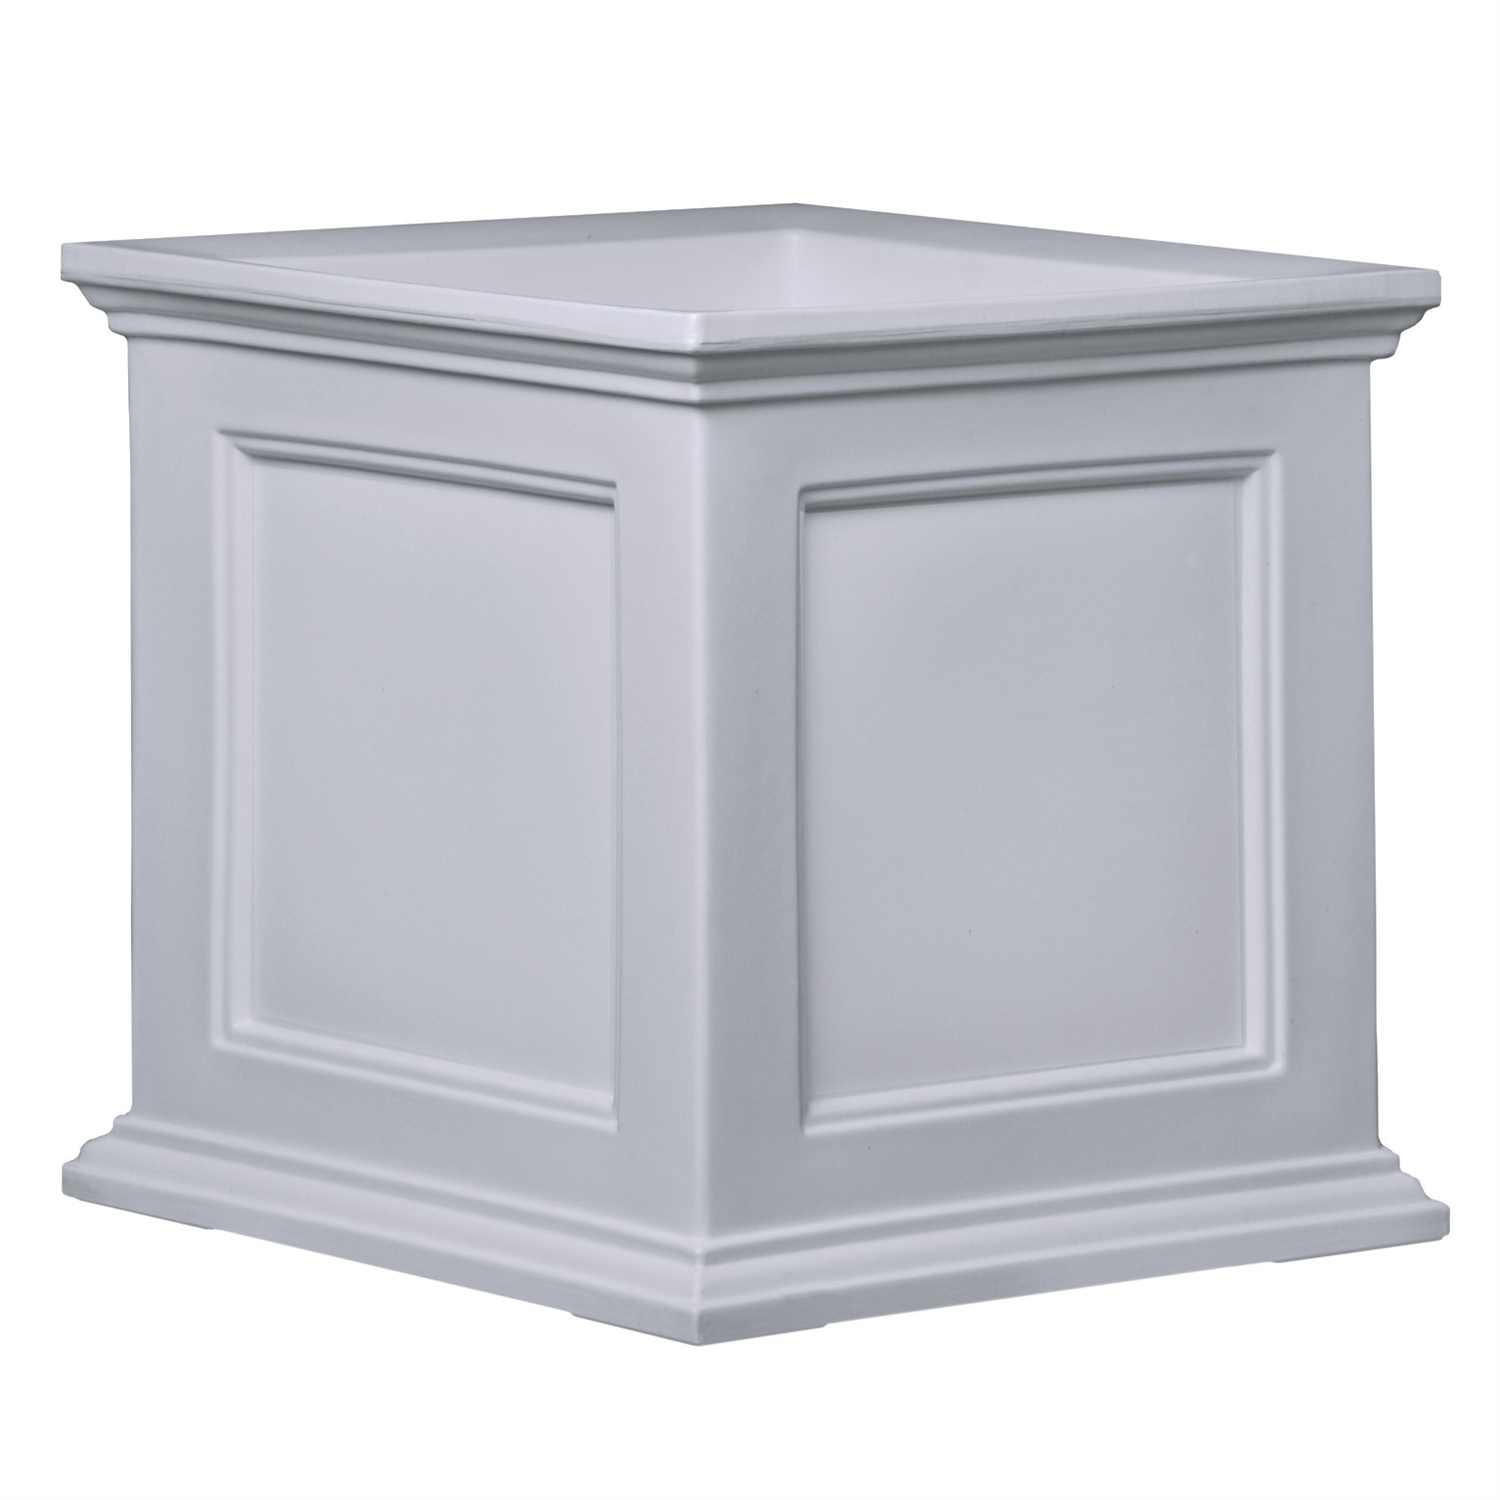 White 20-inch Square Patio Planter Box, 20WSP119 :  This White 20-inch Square Patio Planter Box would be a great addition to your home. Have the look of wood without the upkeep with these high-grade polyethylene planters. Long-lasting beauty, durability and quality. Built-in water reservoir encourages healthy plant growth by allowing plants to practically water themselves. Beautiful New England design adds a charming touch to any patio or deck; Double wall design; Sub-irrigation water system, encourages root growth; 15 Year limited warranty; Drainage Holes: Yes Recommended Plant Type: Flowers; Insect Resistant: Yes Water Resistant: Yes; Warp Resistant: Yes Rot Resistant: Yes; Crack Proof: Yes Fade Resistant: Yes; Anti-Shock: Yes Self Watering: Yes; Capacity: 9.5 gallon Ounces Recycled Content: 0%; Eco-Friendly: Yes Country of Manufacture: United States.